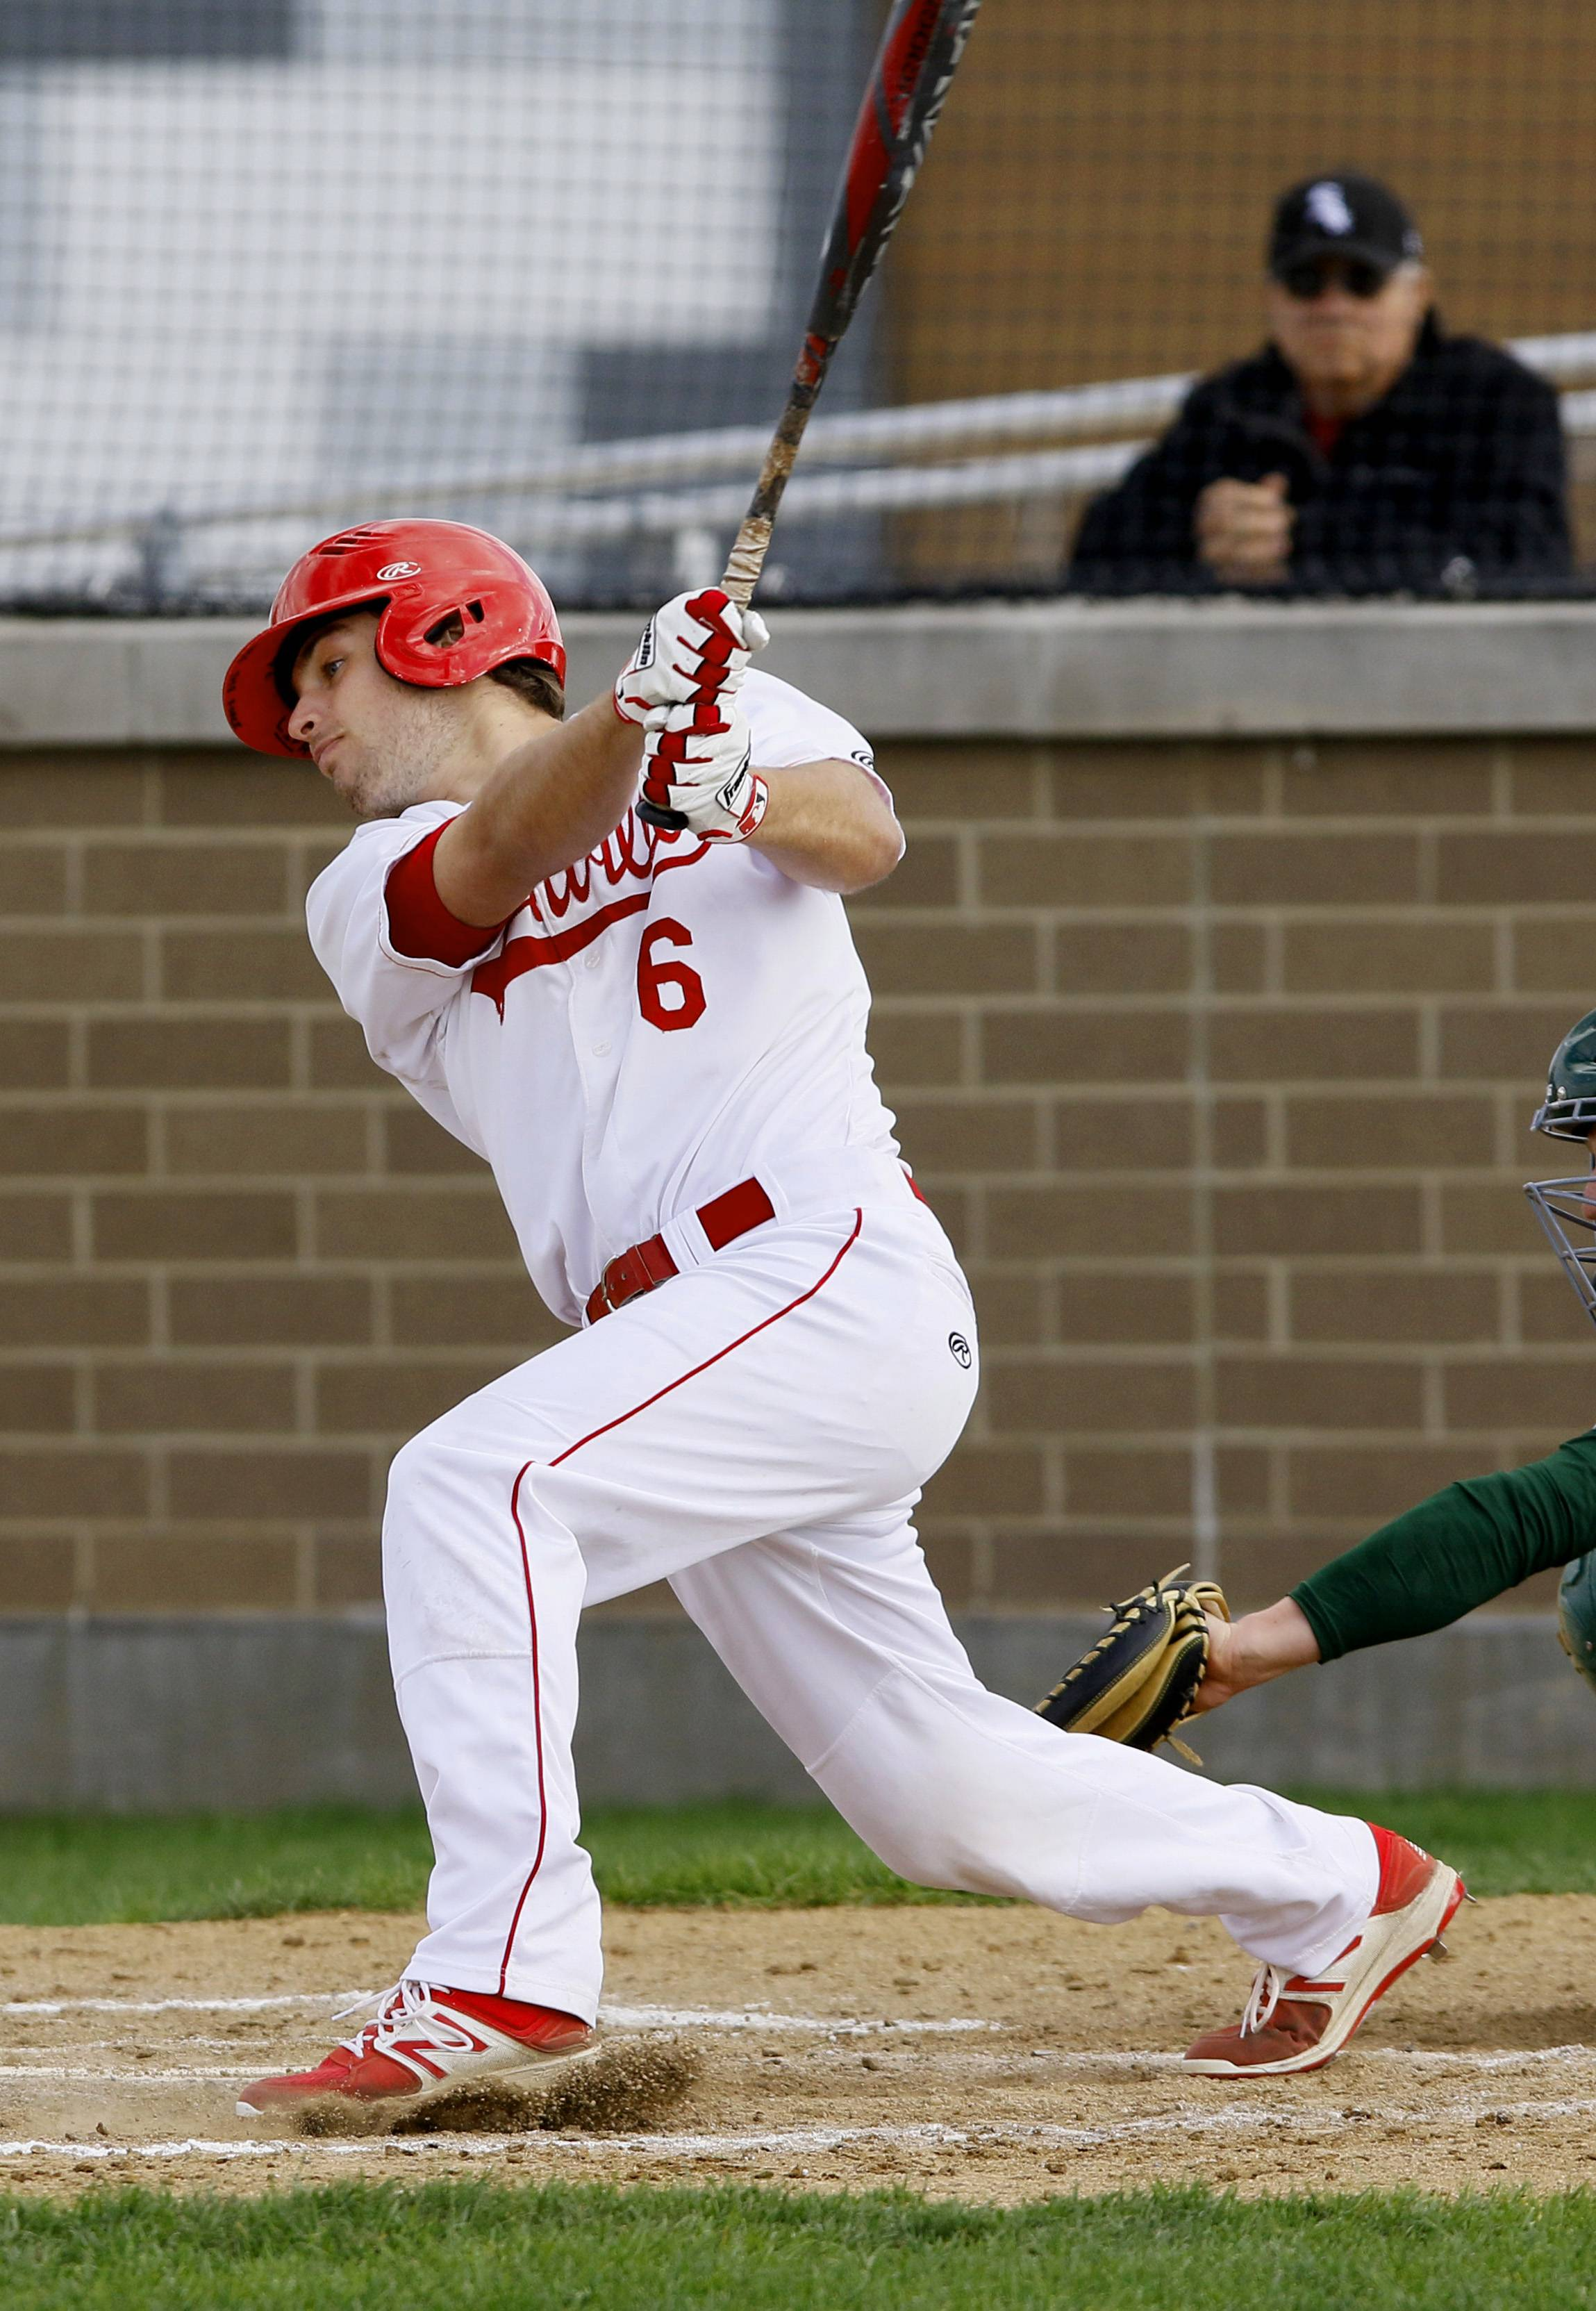 Naperville Central's Thomas Carlsen battles Waubonsie Valley during boys baseball action in Naperville.